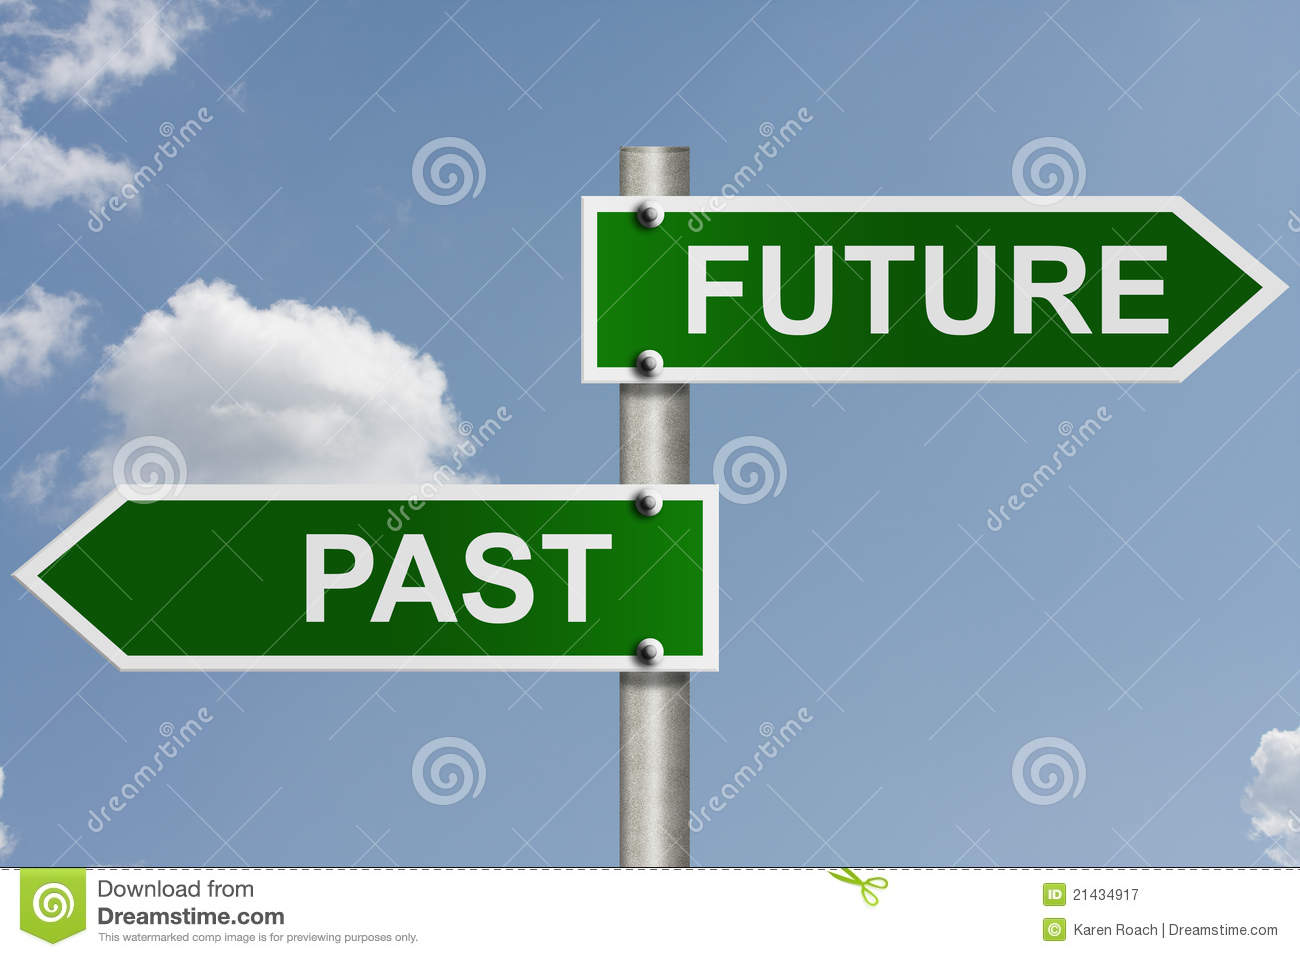 Your future and past